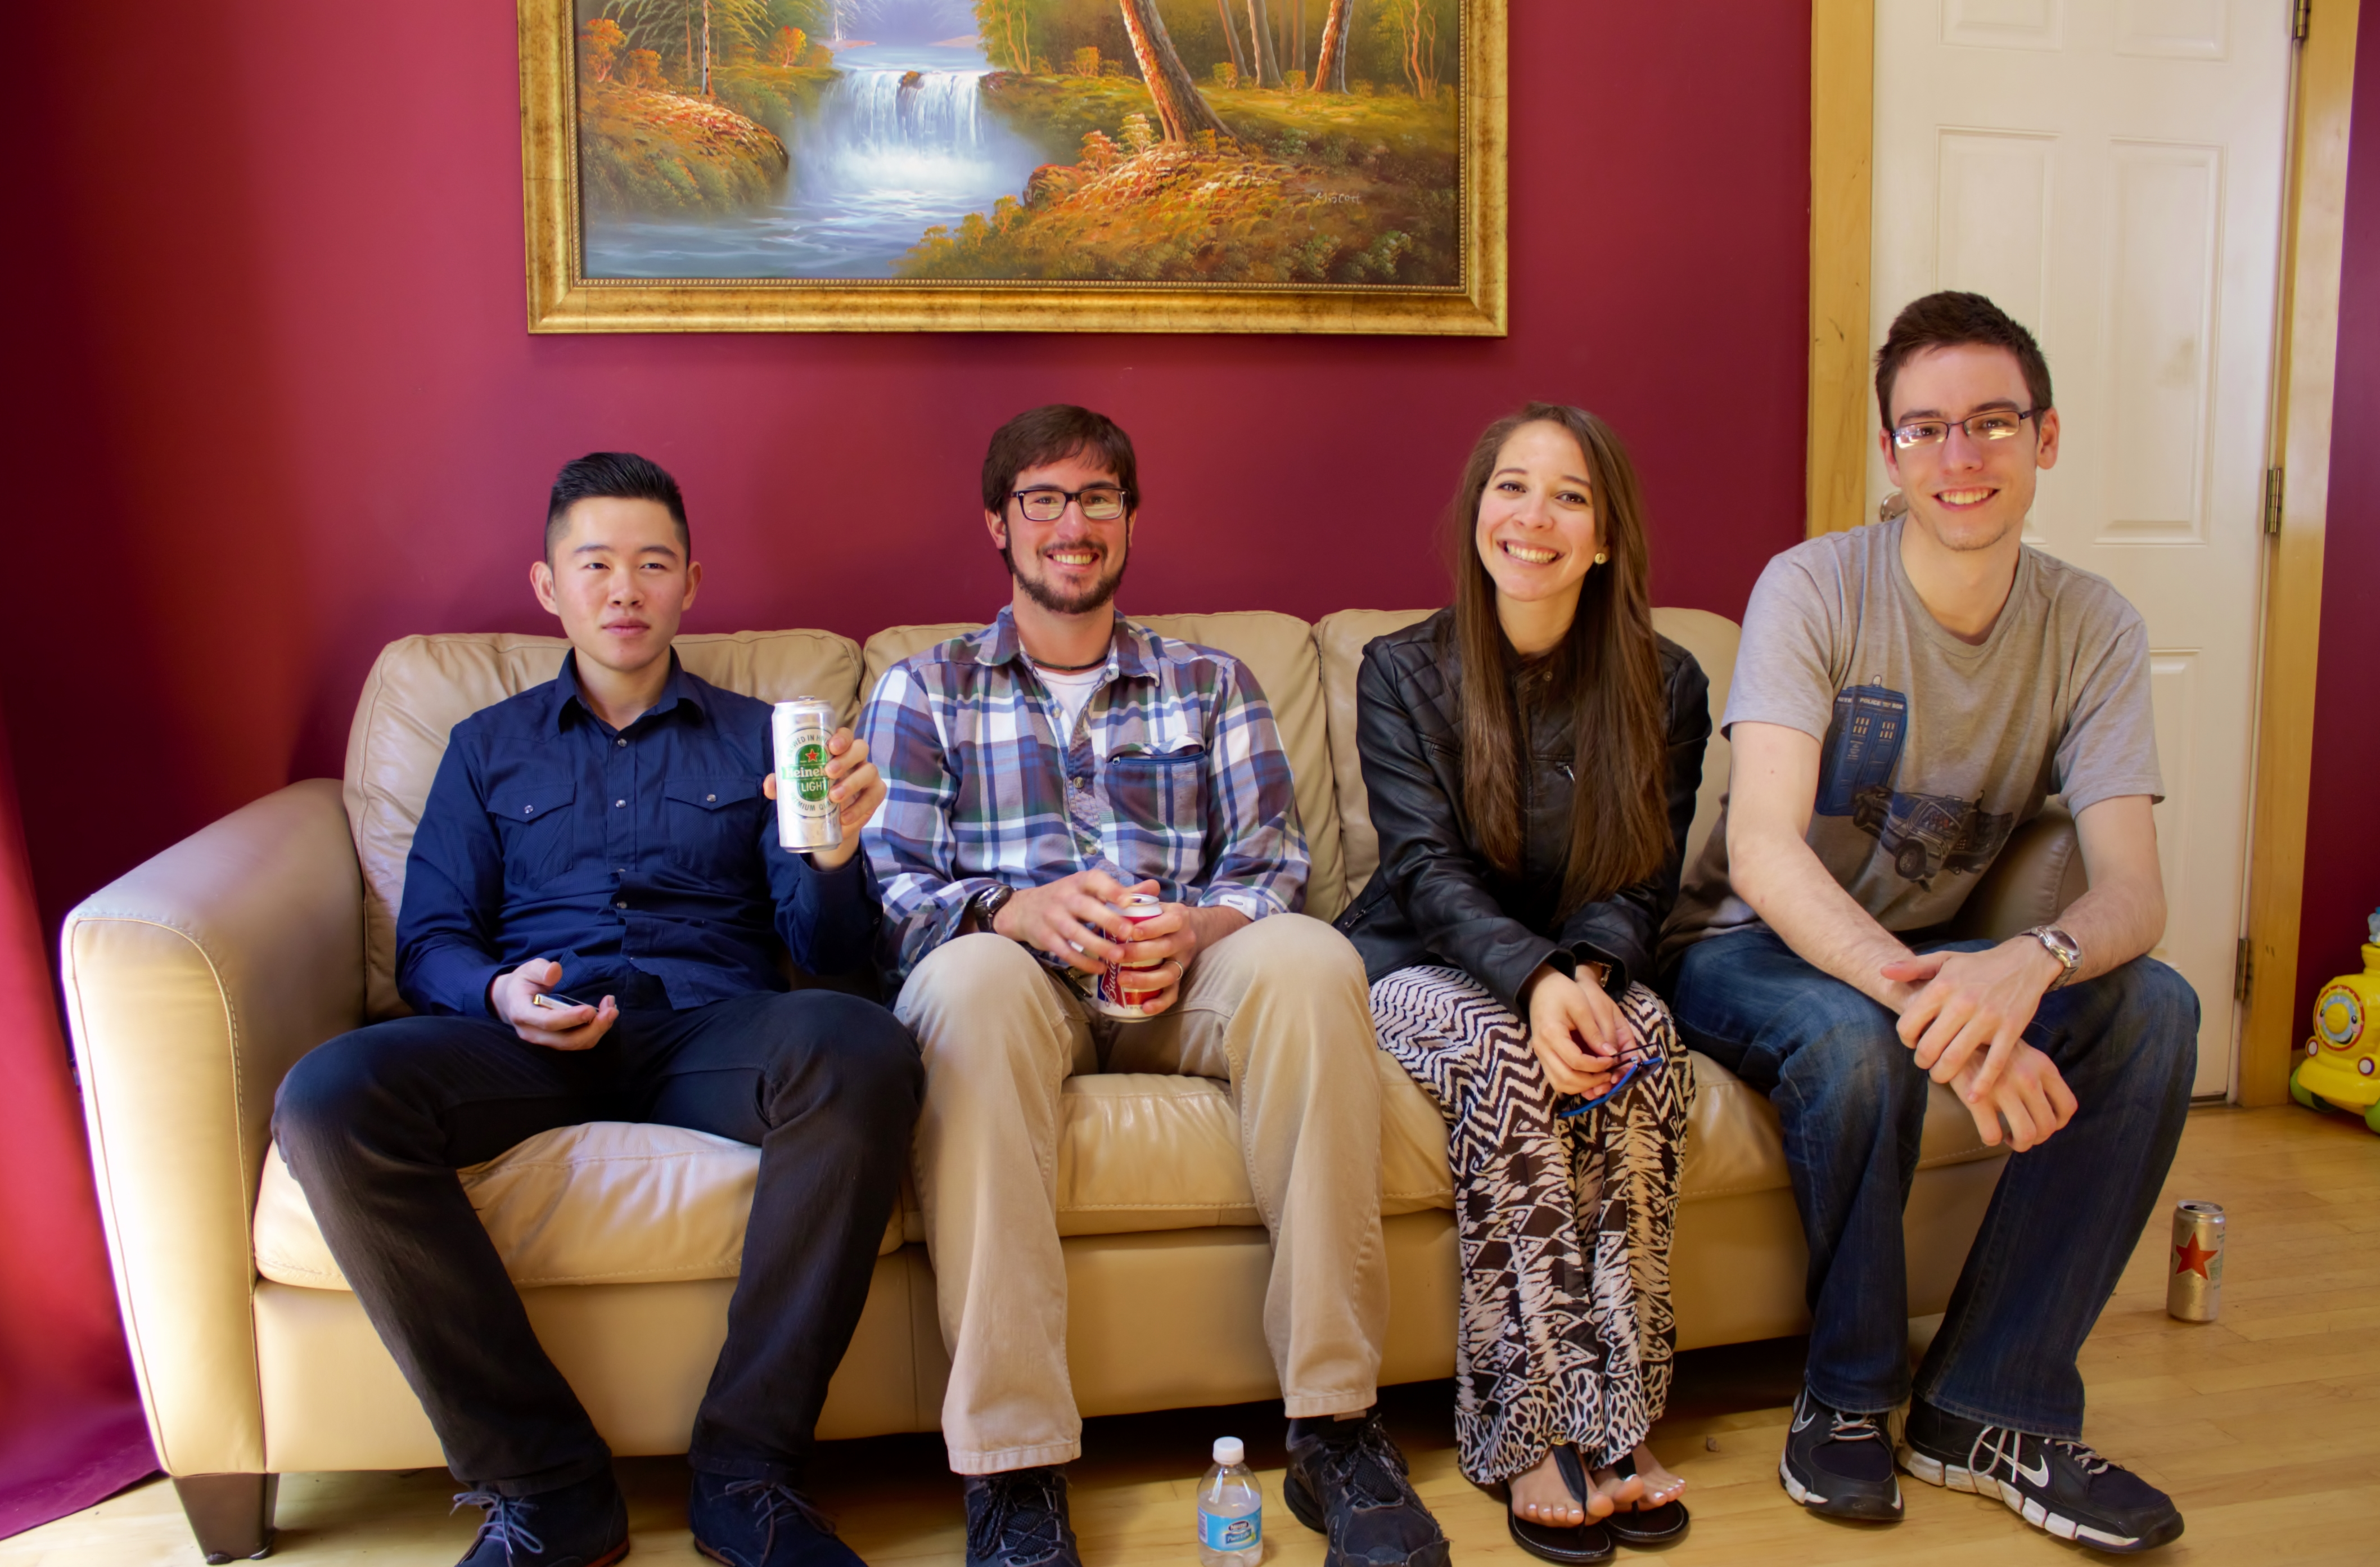 From left to right: Zhi, Andrew, Steph, and Julian relax on the couch after a big meal.